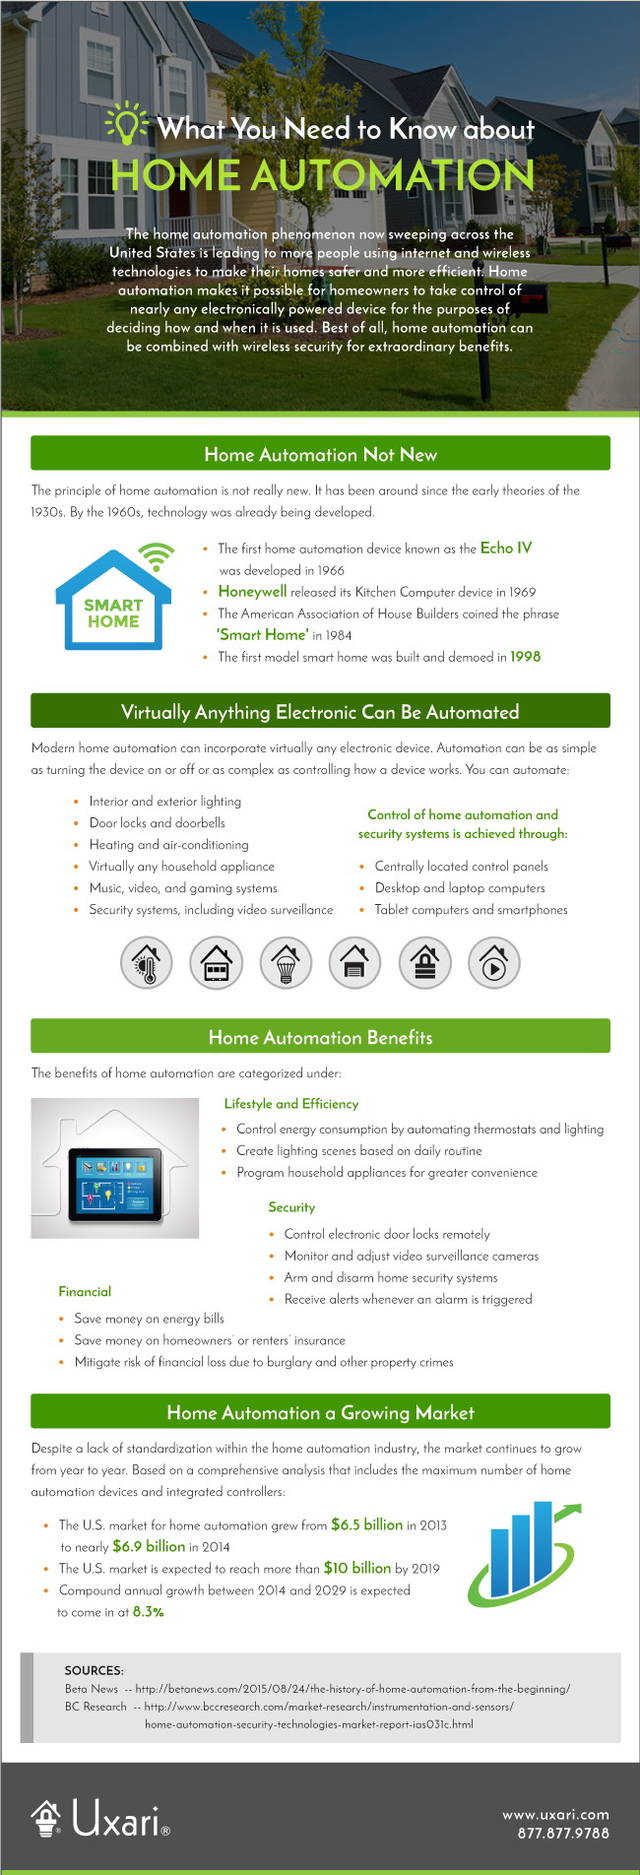 Uxarihomeautomation